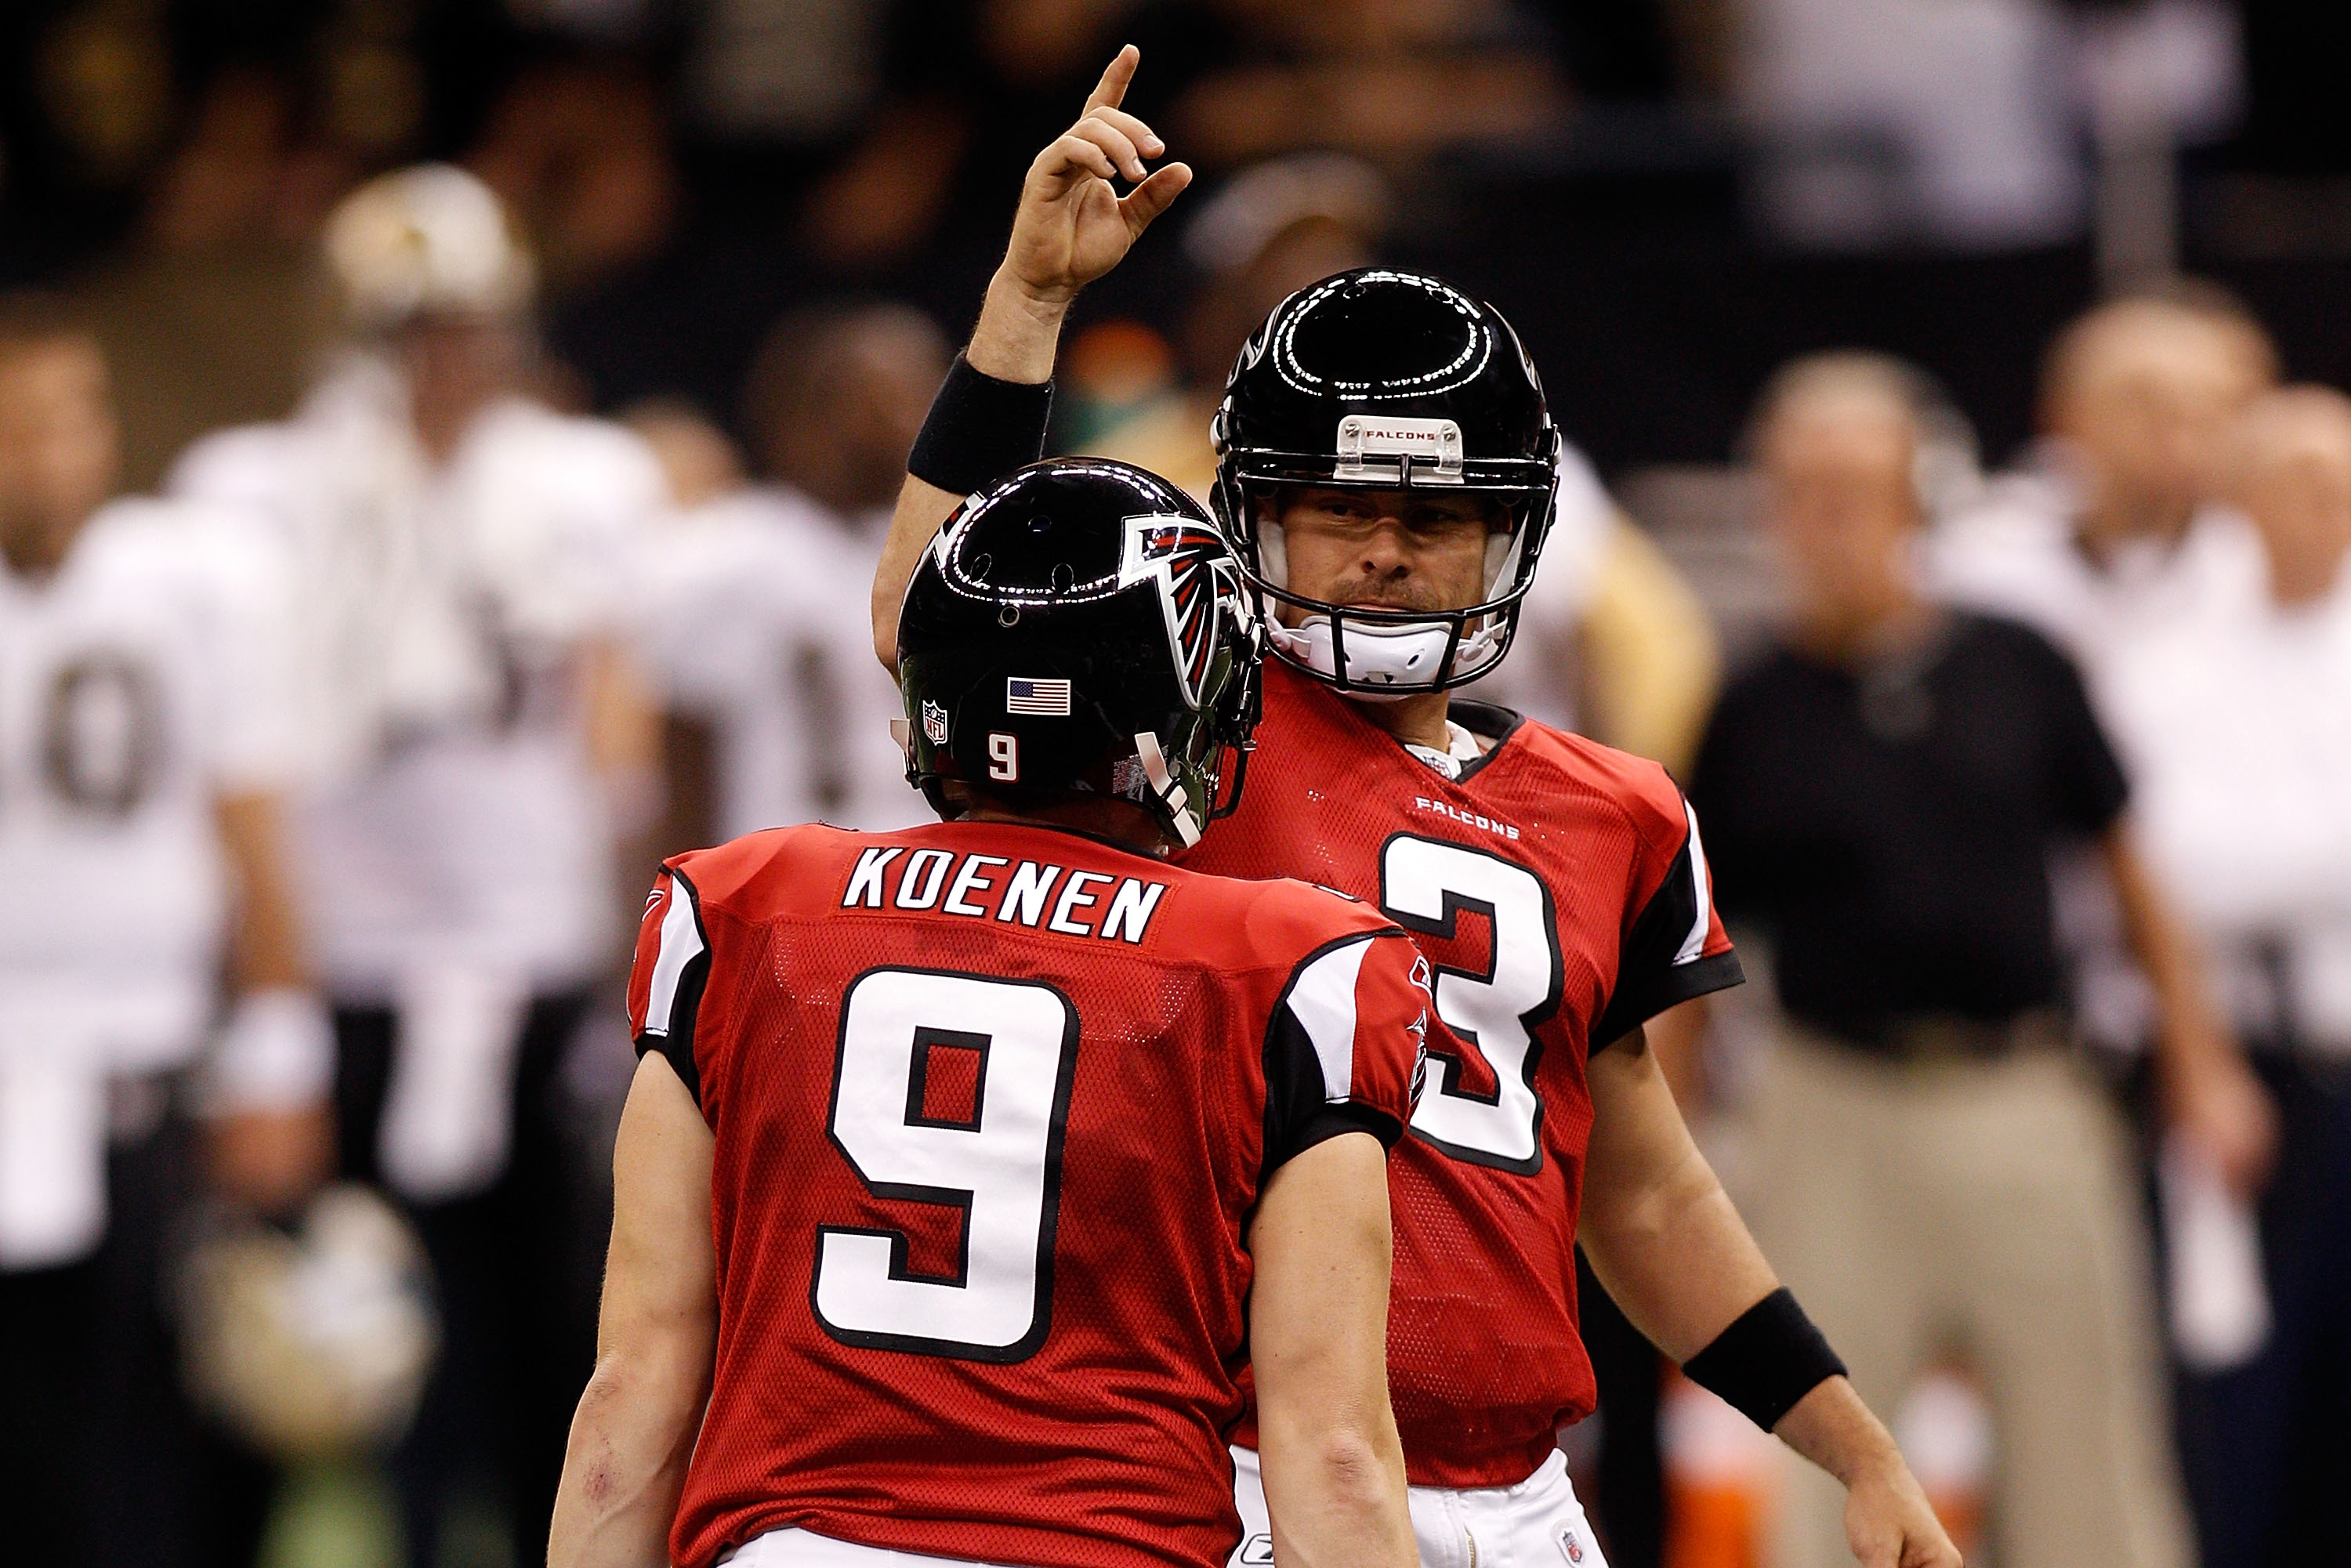 NEW ORLEANS - SEPTEMBER 26:  Matt Bryant #3 of the Atlanta Falcons celebrates after kicking a field goal to win the game in overtime 27-24 against the New Orleans Saints at the Louisiana Superdome on September 26, 2010 in New Orleans, Louisiana.  (Photo b